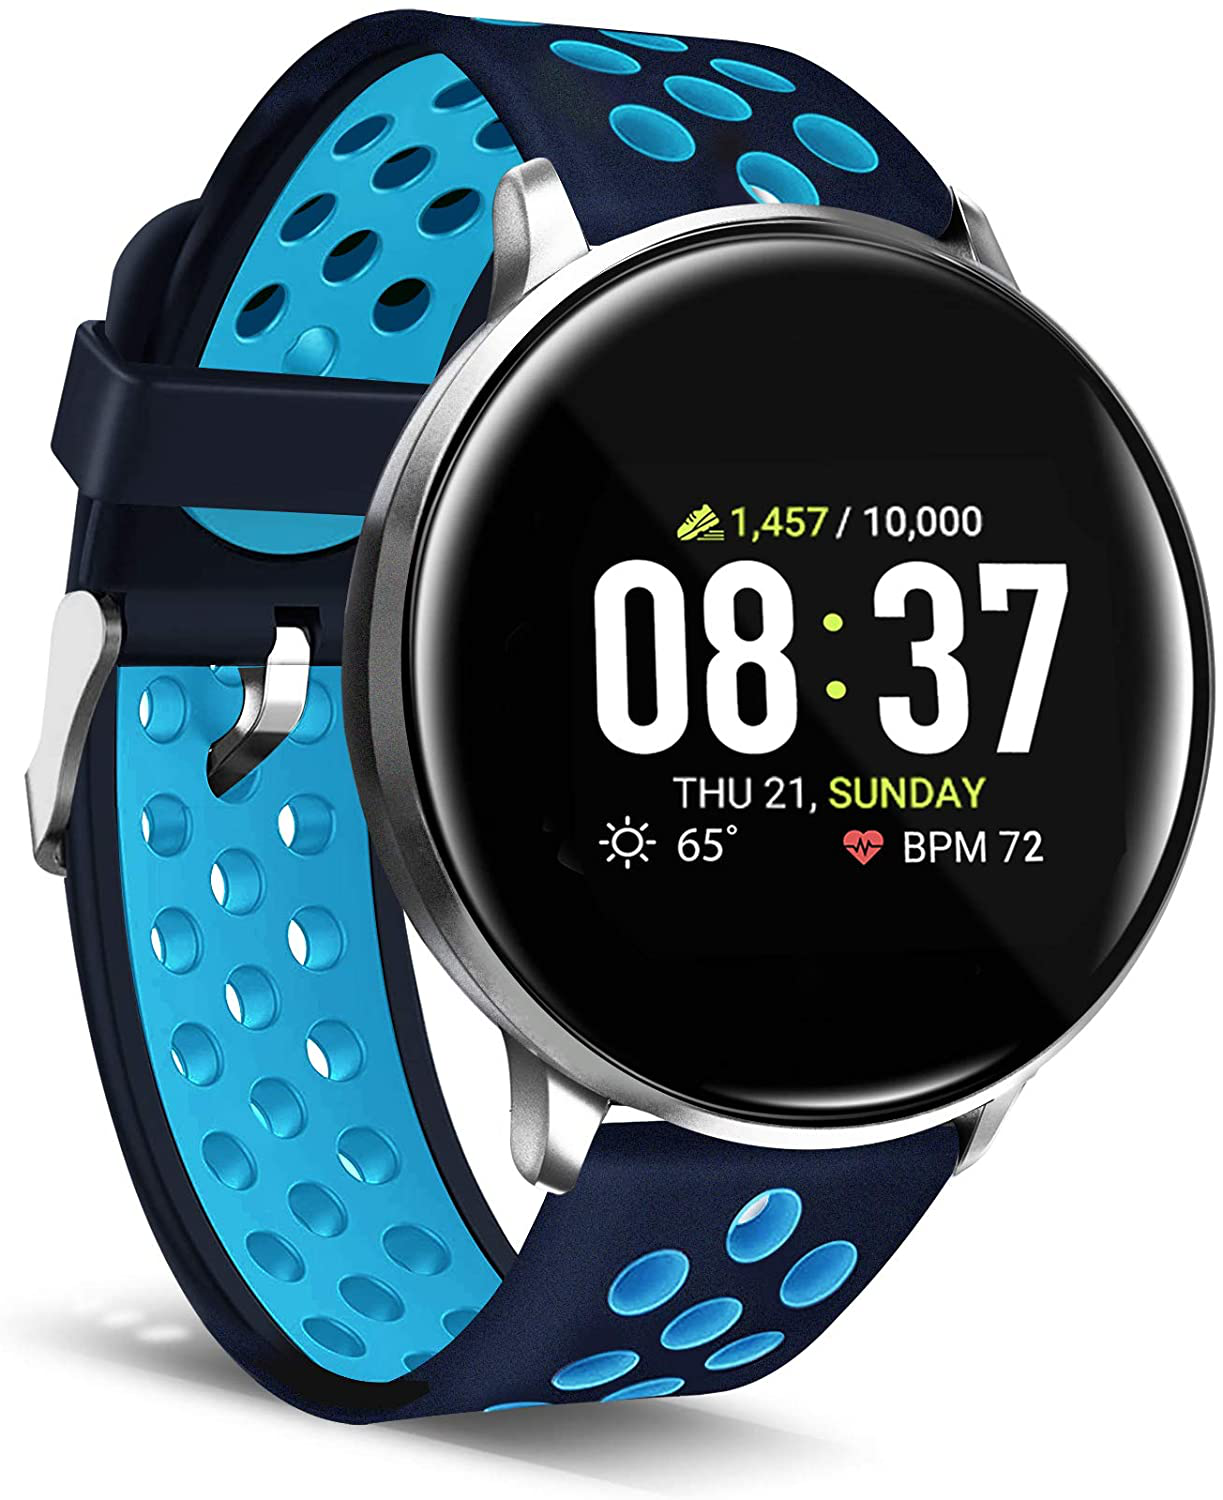 Itouch Sport Smartwatch Fitness Tracker Heart Rate Perforated Navy/Turquoise fitness heart itouch perforated rate smartwatch sport tracker